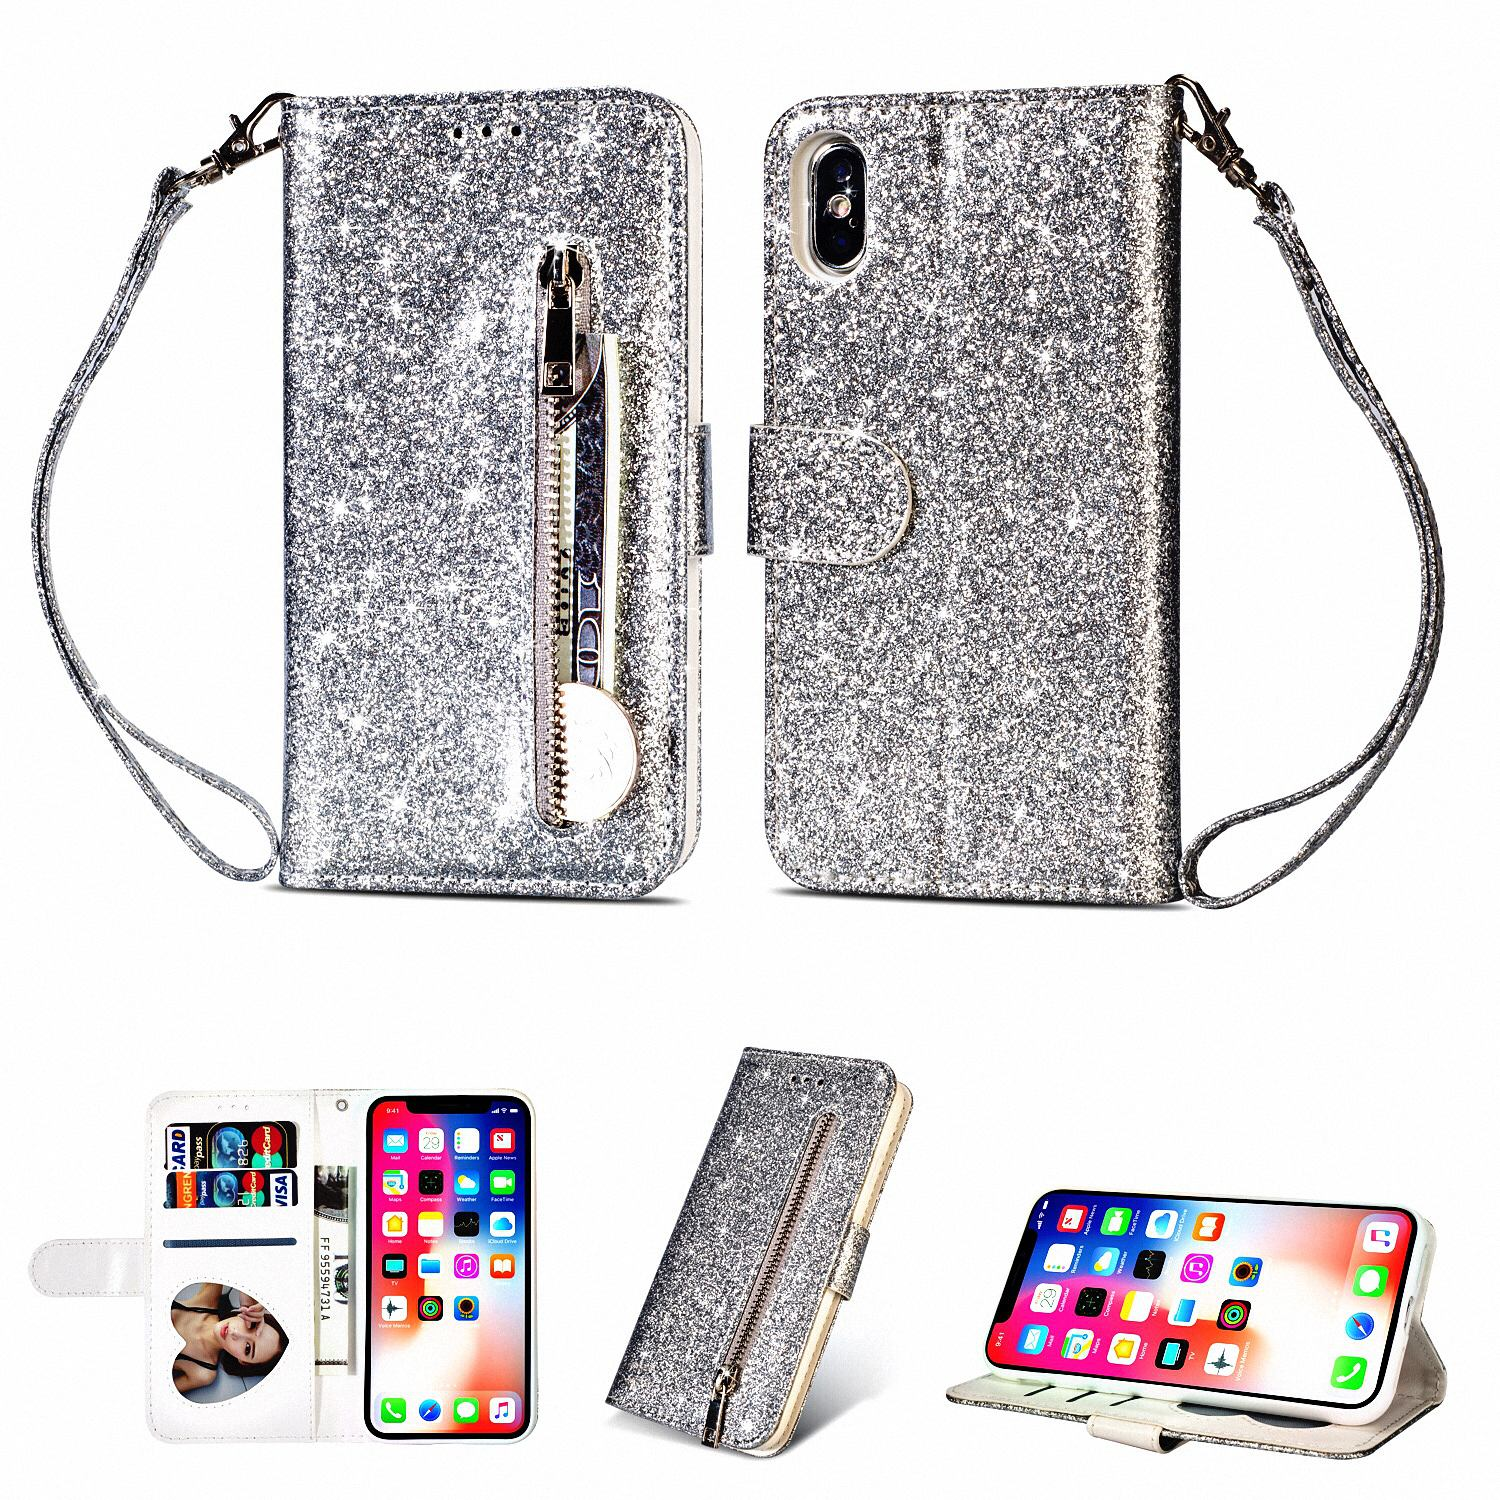 "Allytech iPhone X Case, Premium PU Leather Glitter Protective Zipper Cards Slots Wallet Case Cover with Hand Strap Shockproof Stand Cover for Apple iPhone X 5.8"" 2017 Released, Silver"